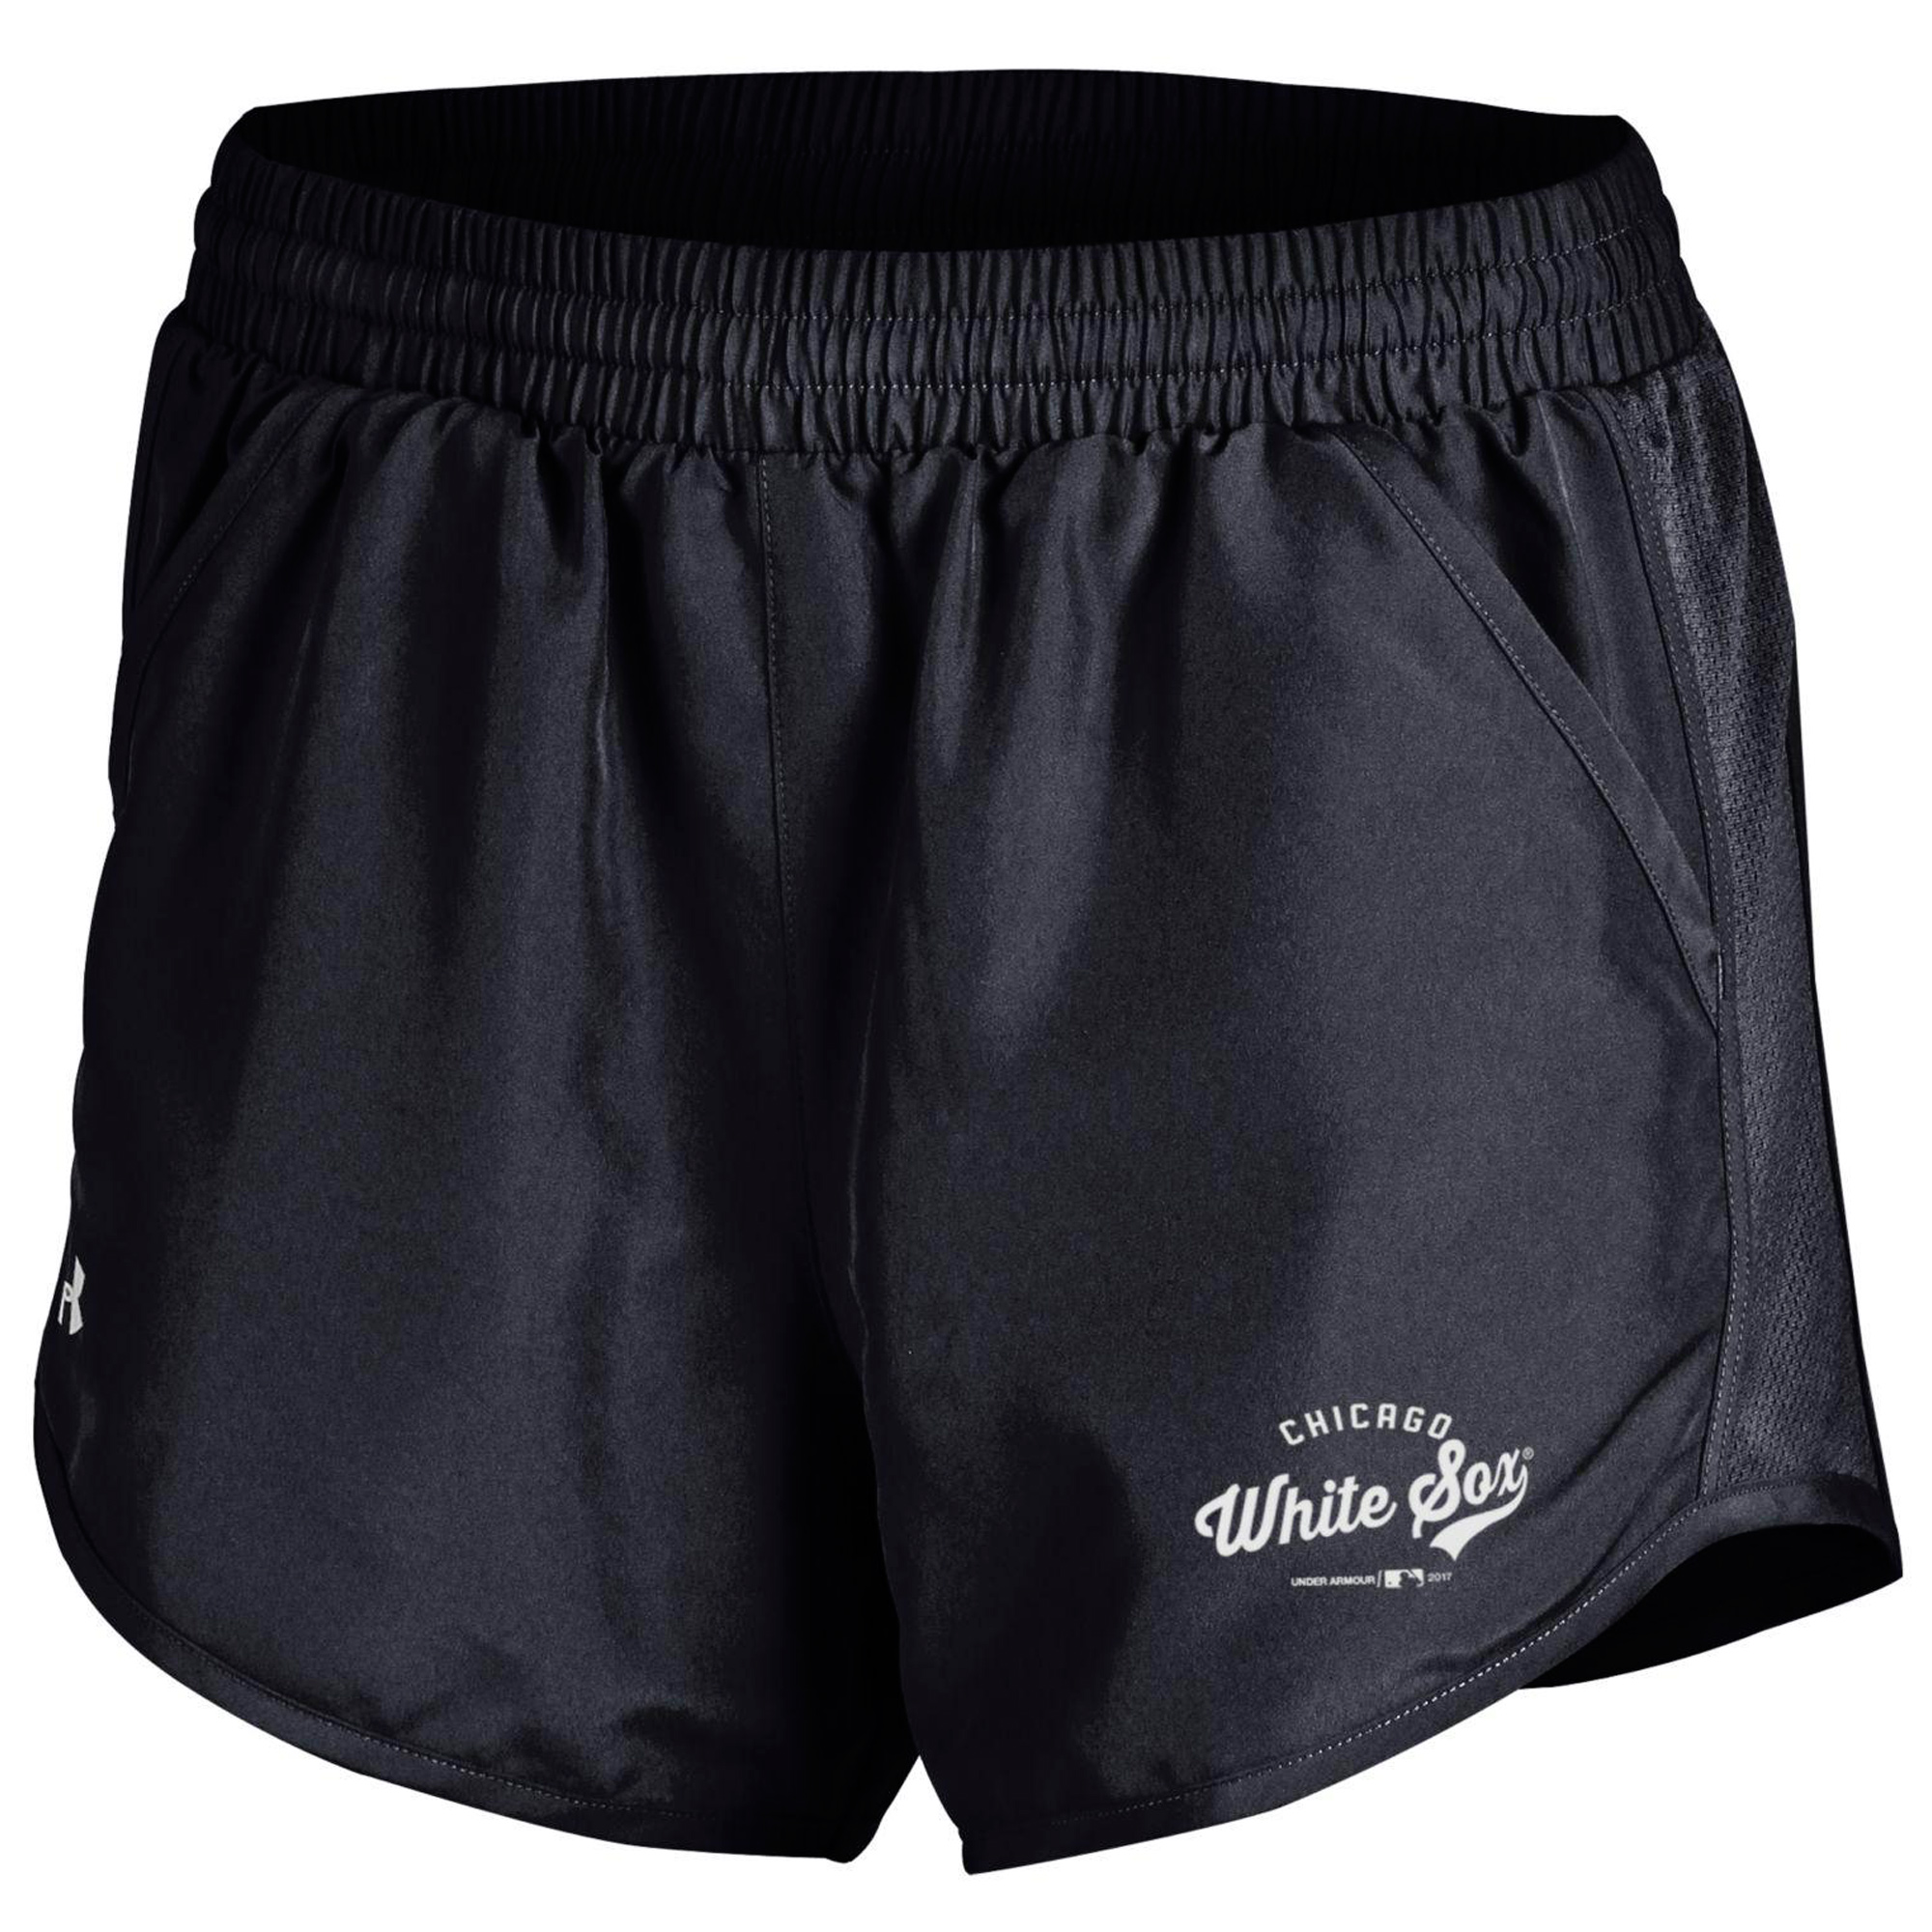 Chicago White Sox Under Armour Women's Fly By Performance Running Shorts - Black